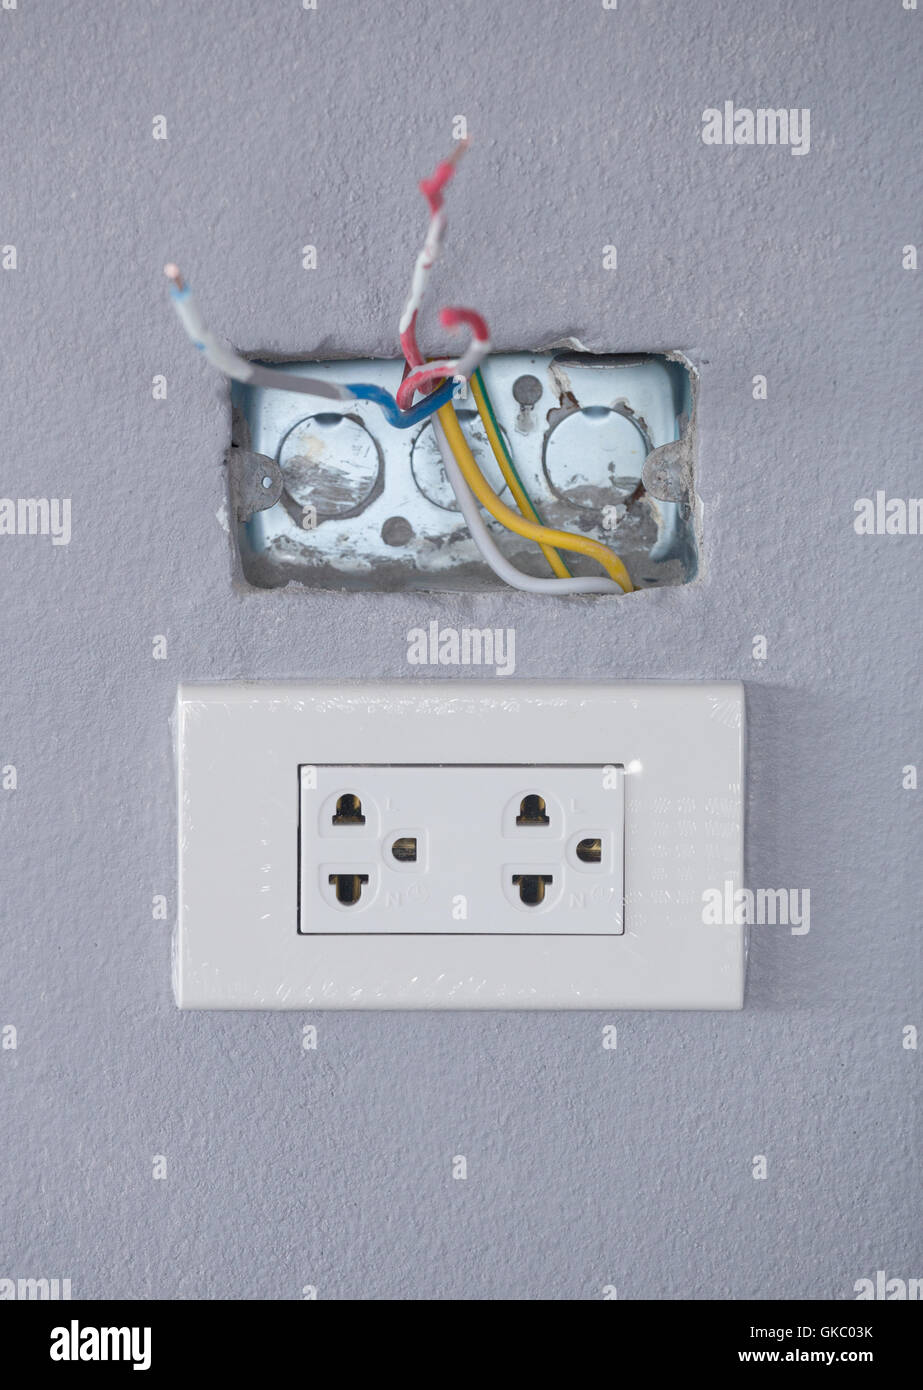 New Electric Wall Socket With Plate On Gray Background Home Wiring